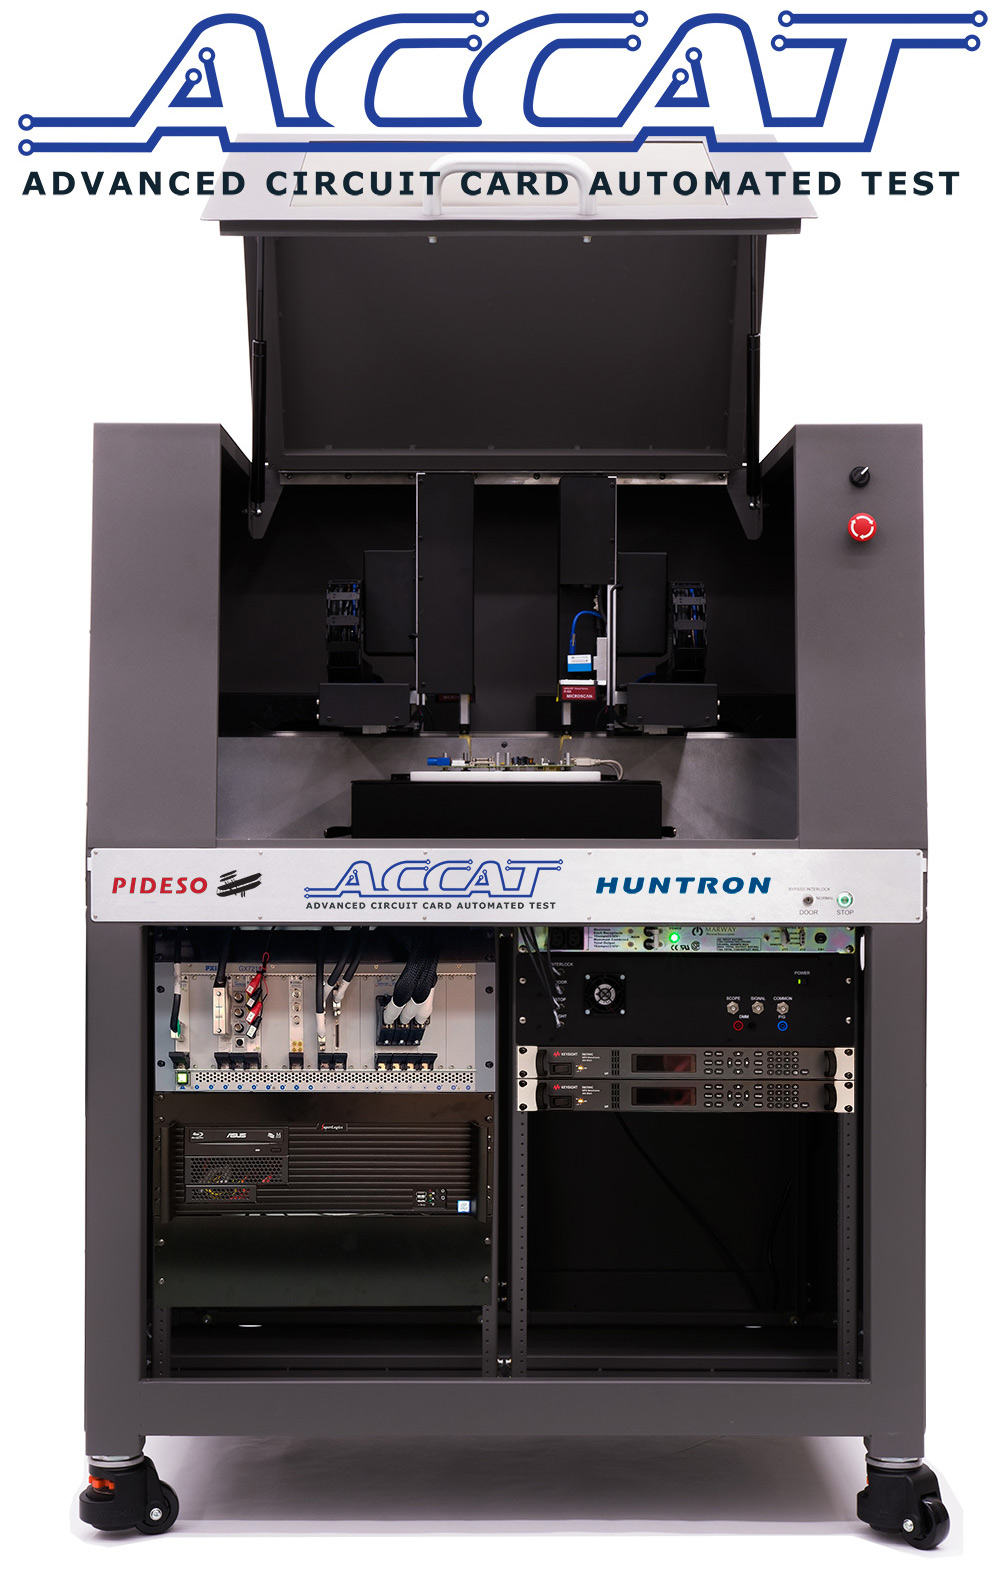 ACCAT - Advanced Circuit Card Automated Test